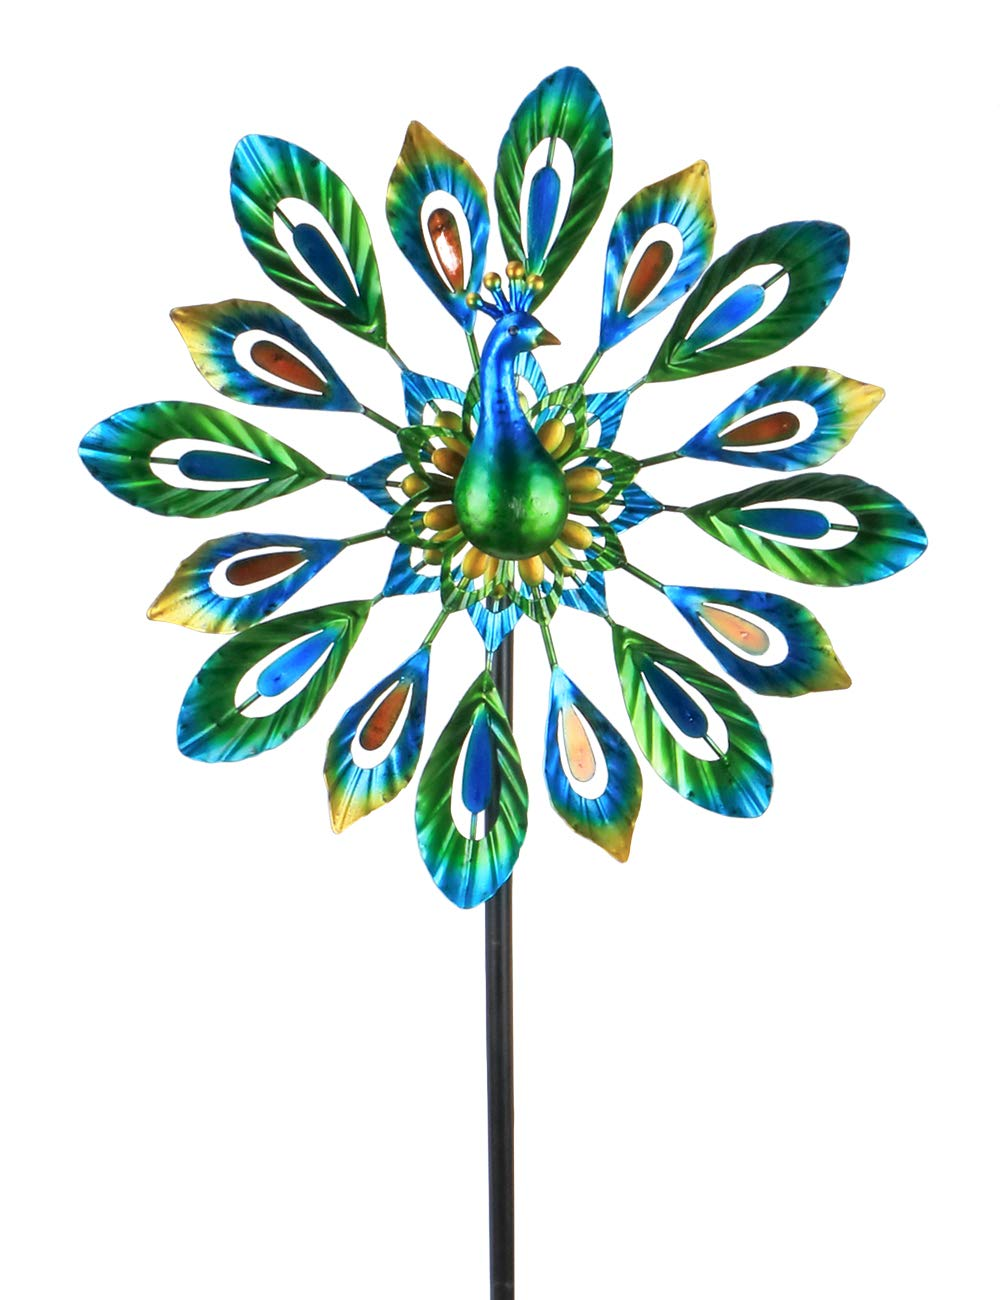 MUMTOP Wind Spinner 51'' Peacock Double Wind Sculpture is Suitable for Decorating Your Patio, Lawn & Garden